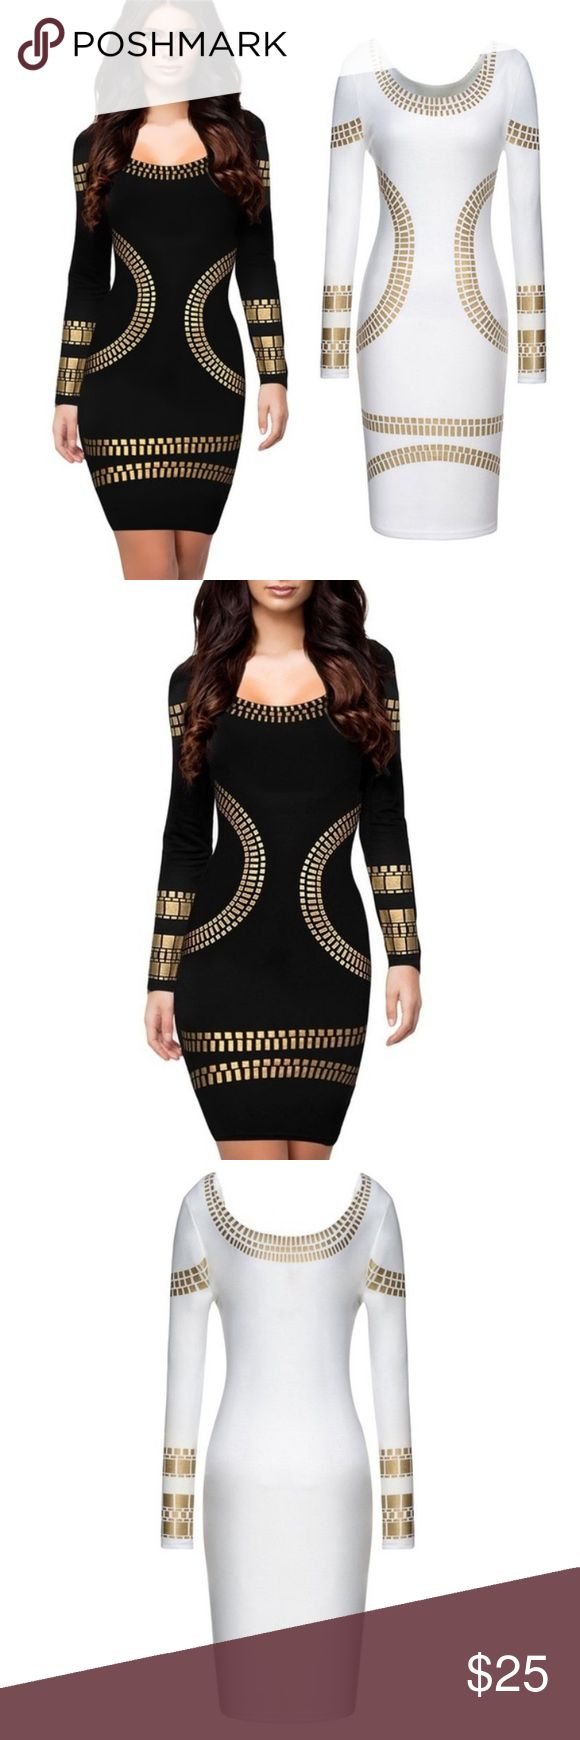 💜💜 Hot Miami Style Gold Pattern Bodycon Dress Brand new. As worn by Kim Kardashian. Very sexy, elegant, Brazilian style bodycon dress. Excellent for parties, clubs, and other special occasions. Will leave an impression! Note: dress is not studded - the gold is a printed pattern, not metal/plastic pieces. Dresses run slightly larger than their size! Dresses